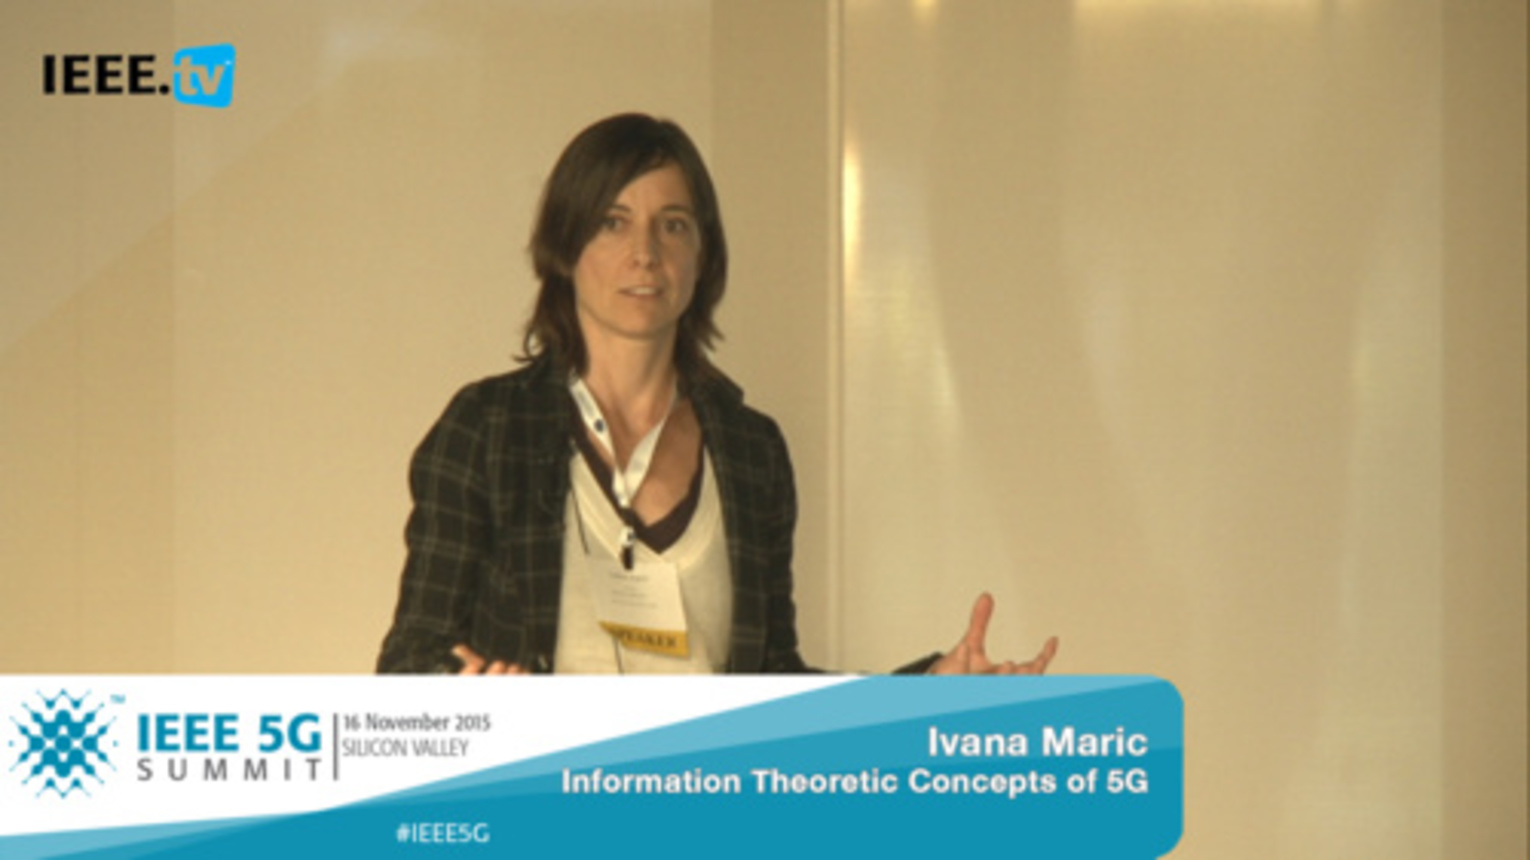 Silicon Valley 5G Summit 2015 - Ivana Maric - Information Theoretic Concepts of 5G